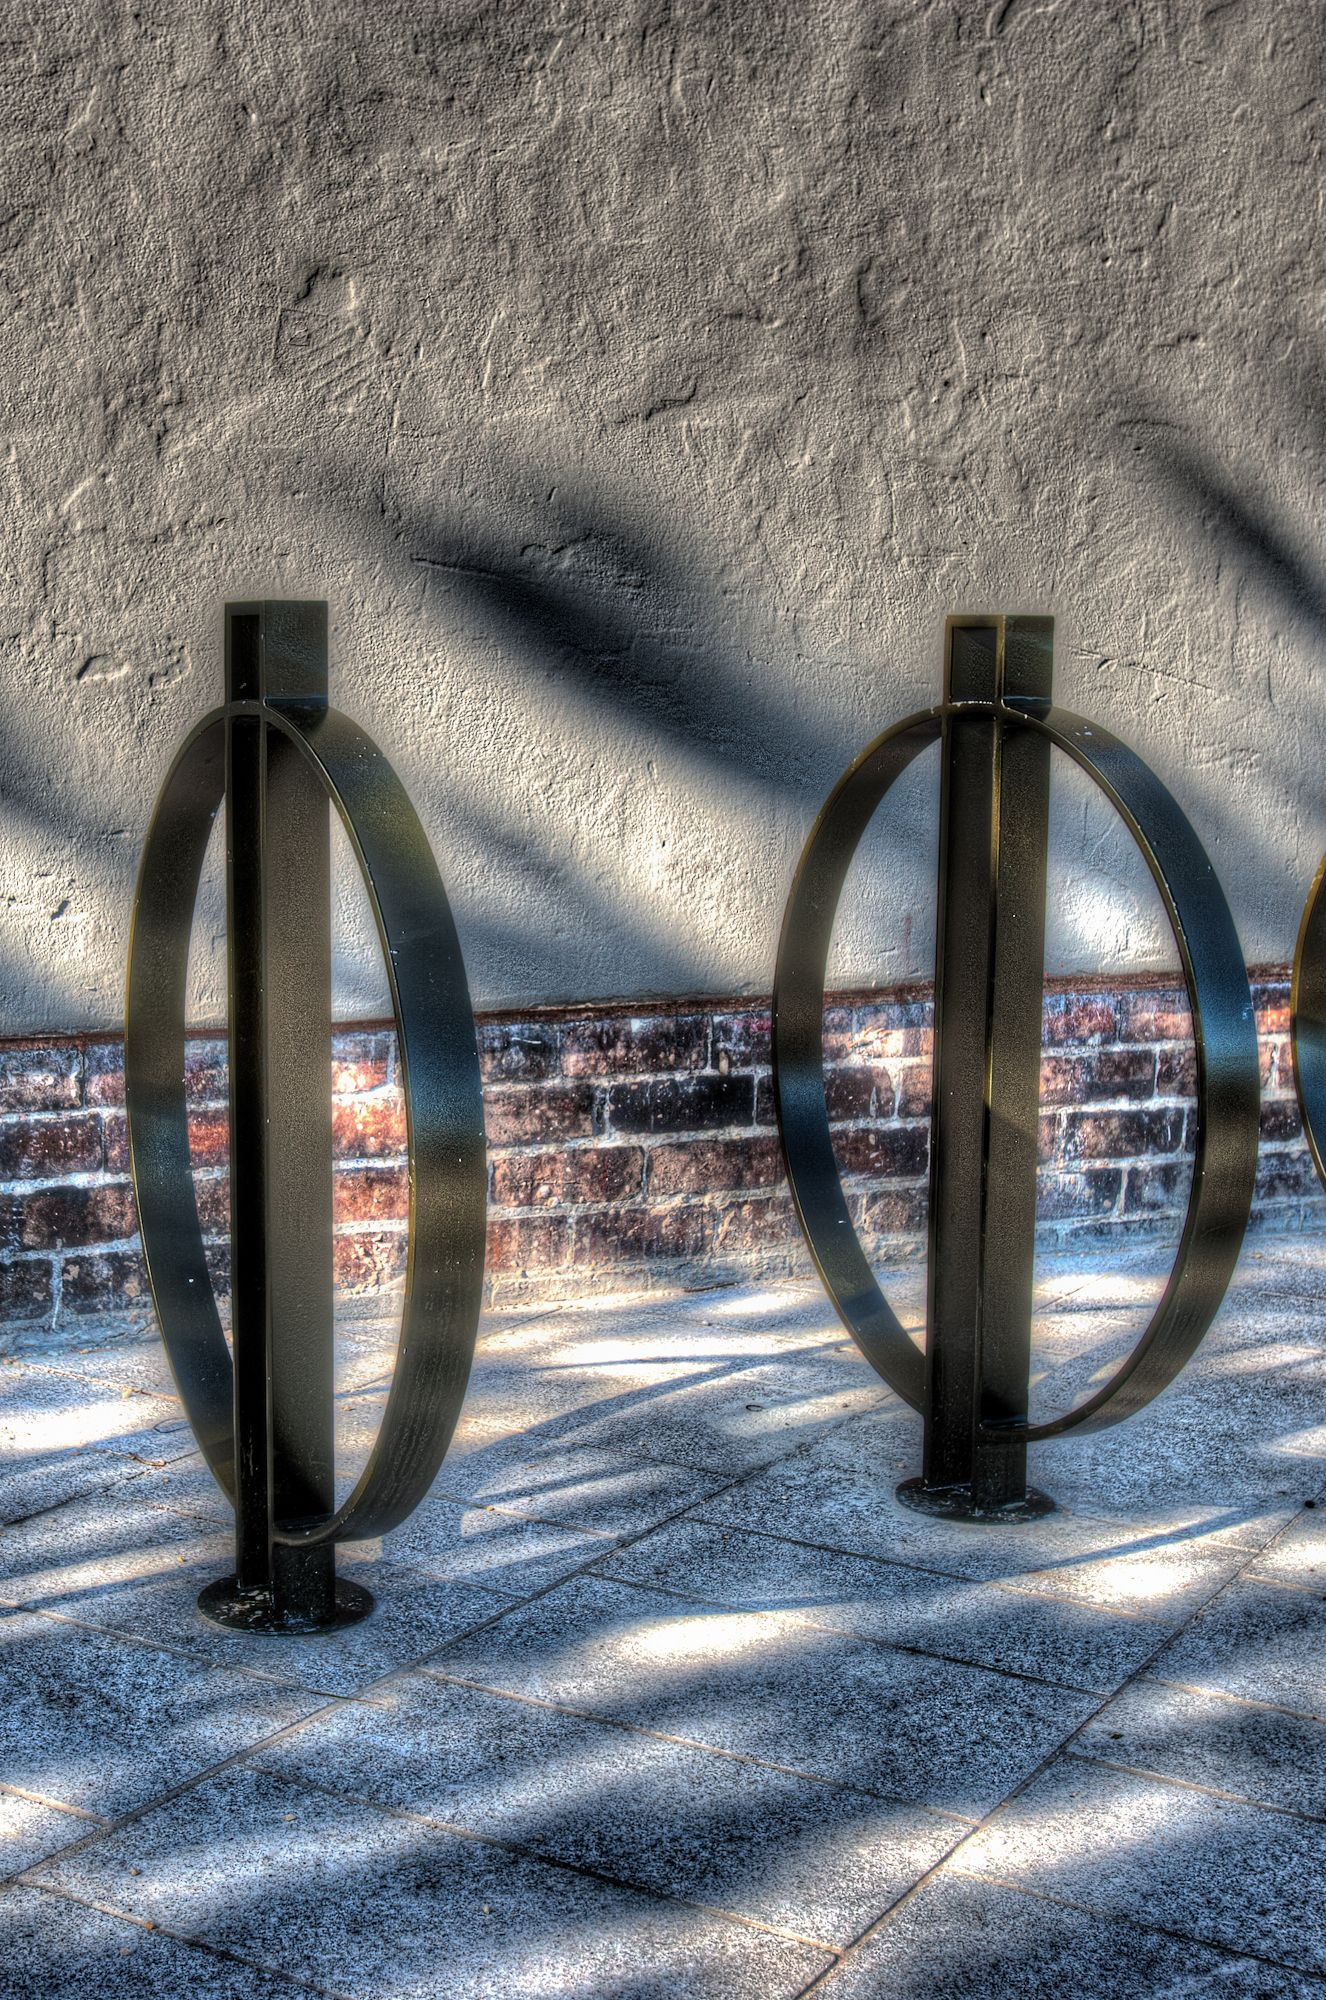 Section of a abstract photo of a bike rack